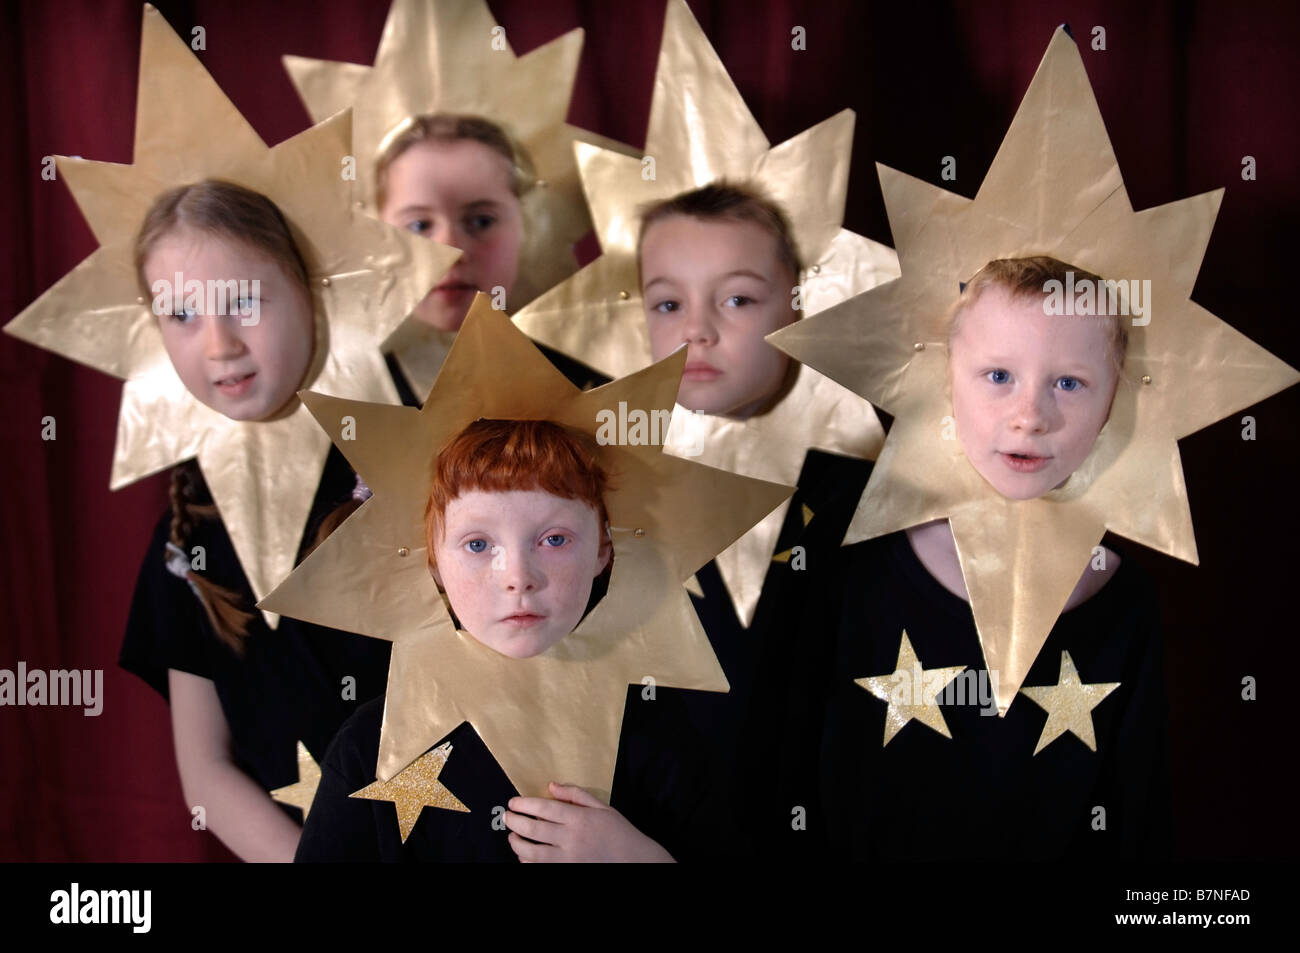 CHILDREN DRESSED IN STAR COSTUMES DURING A PRIMARY SCHOOL NATIVITY PLAY SOMERSET UK - Stock Image  sc 1 st  Alamy & Dressing Up Actors School Play Stock Photos u0026 Dressing Up Actors ...